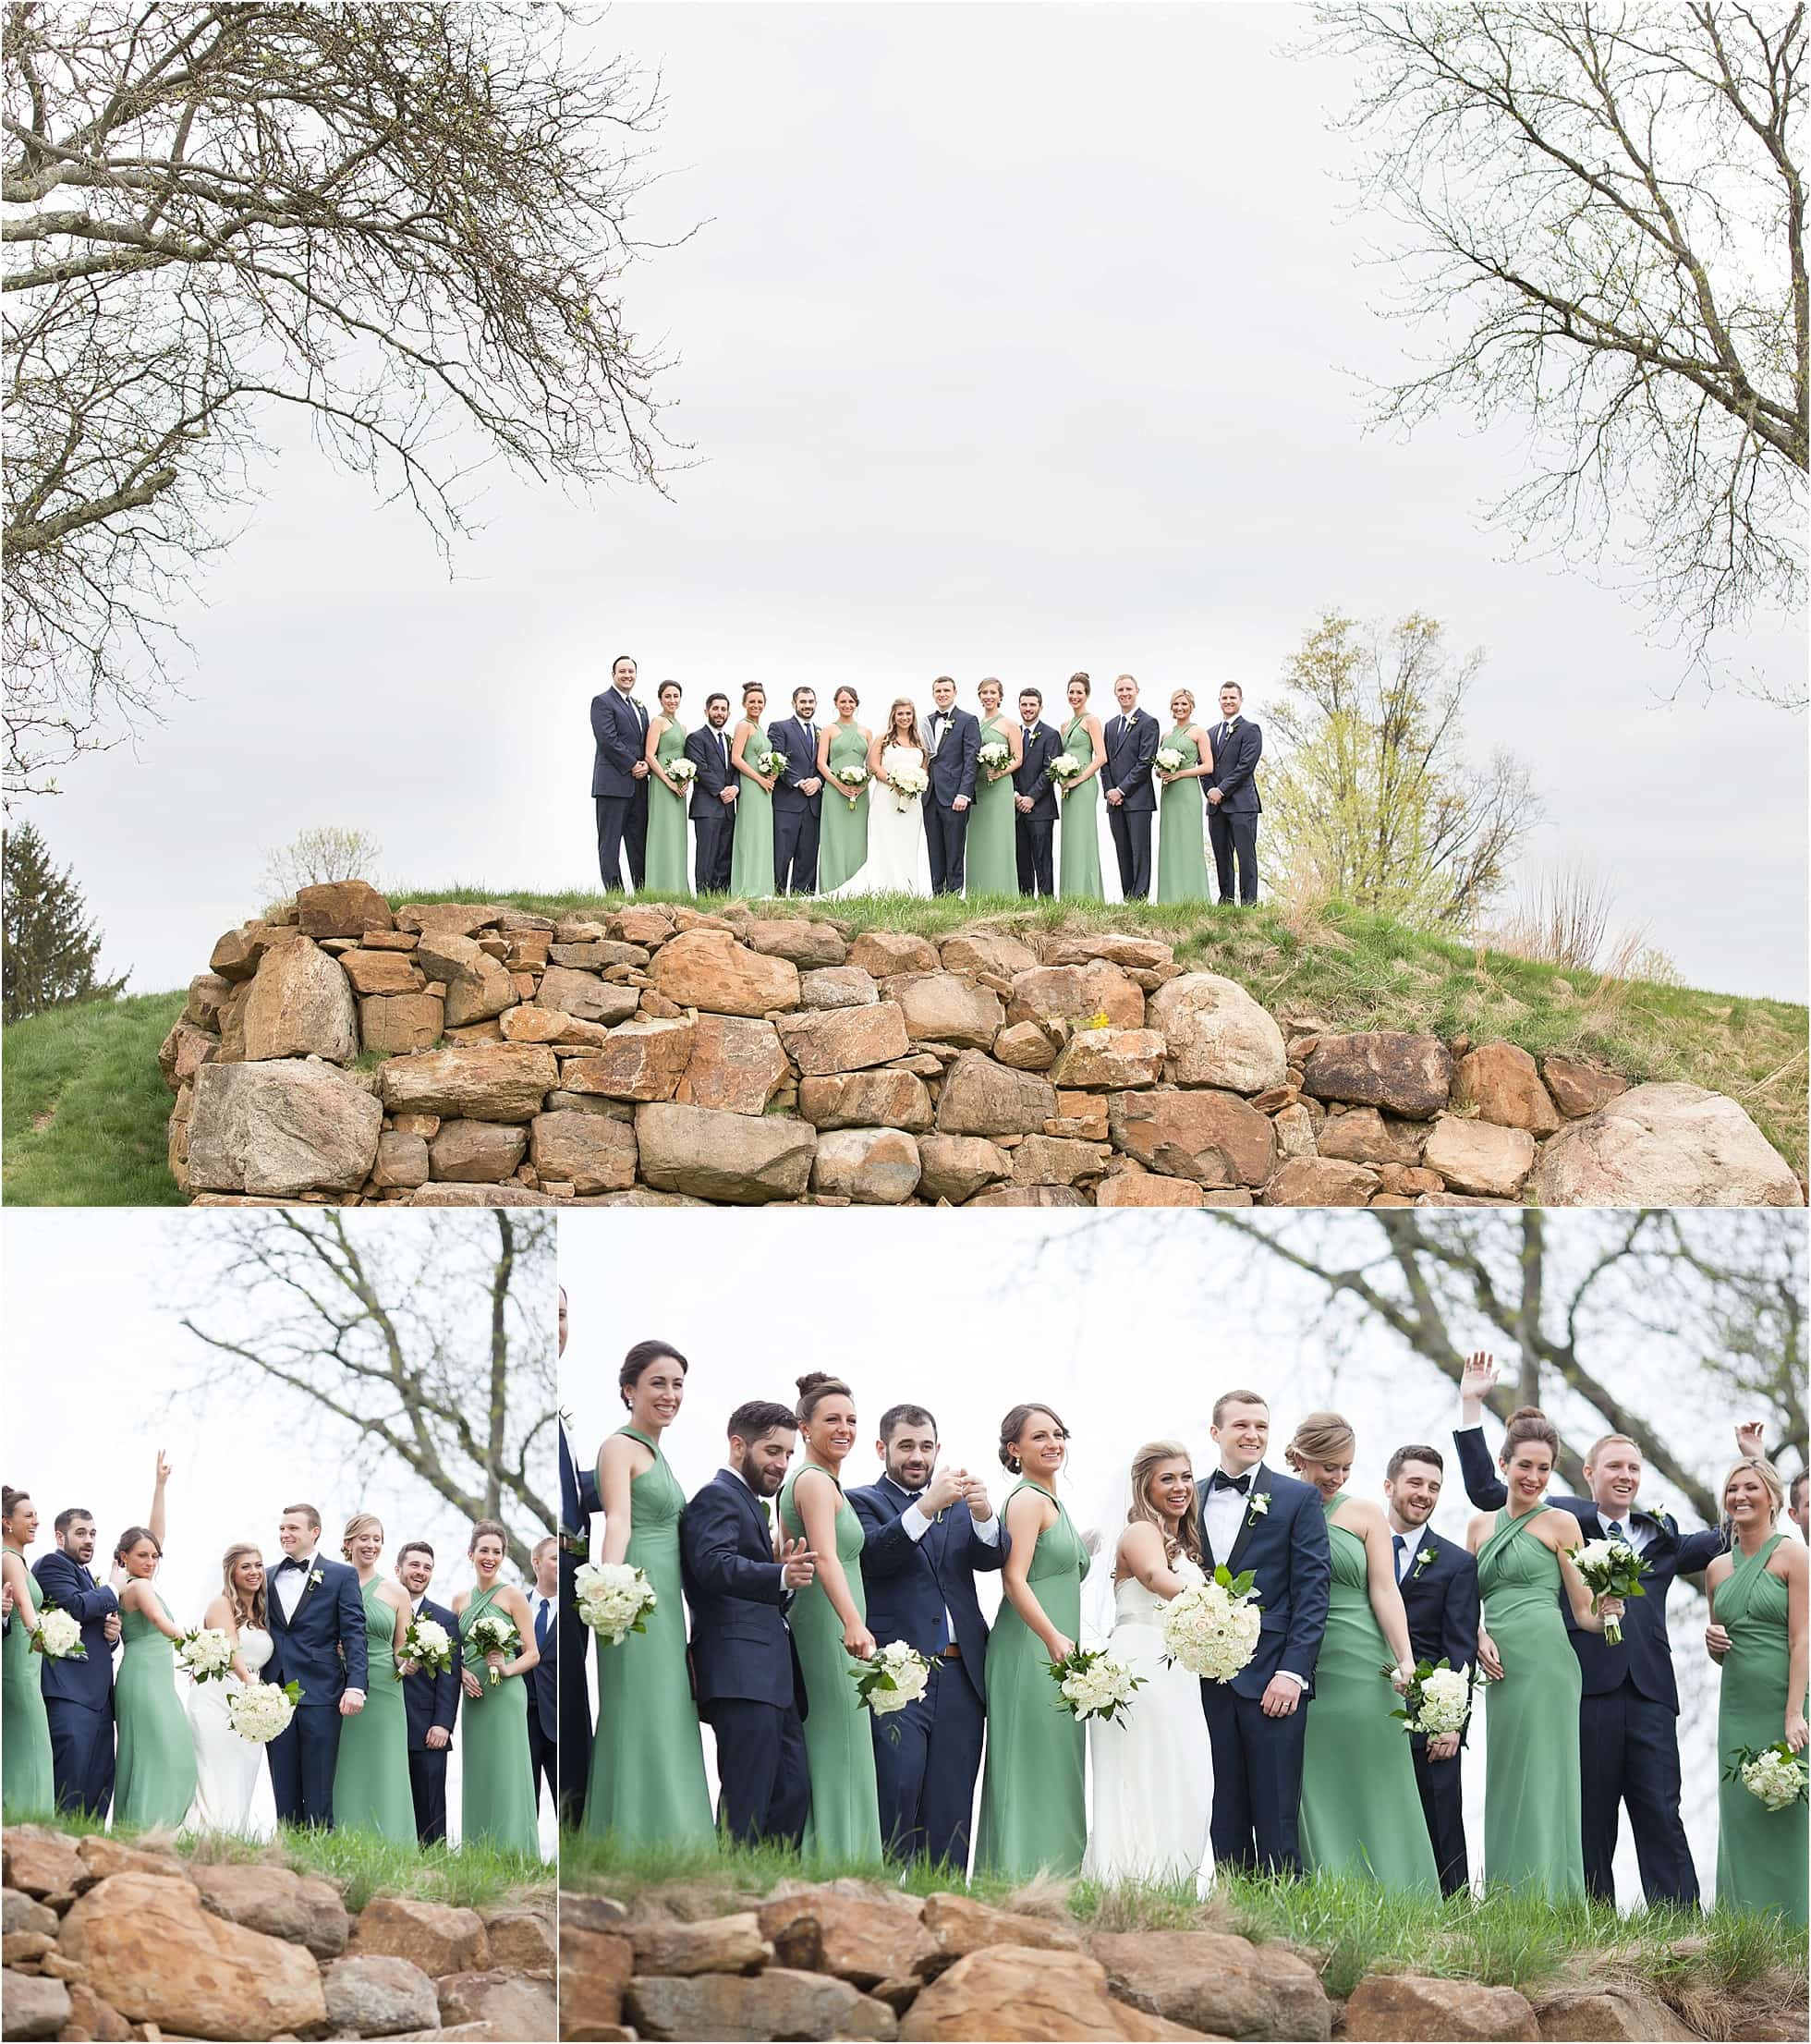 Green And White Wedding Photos Ideas Manor Country Club